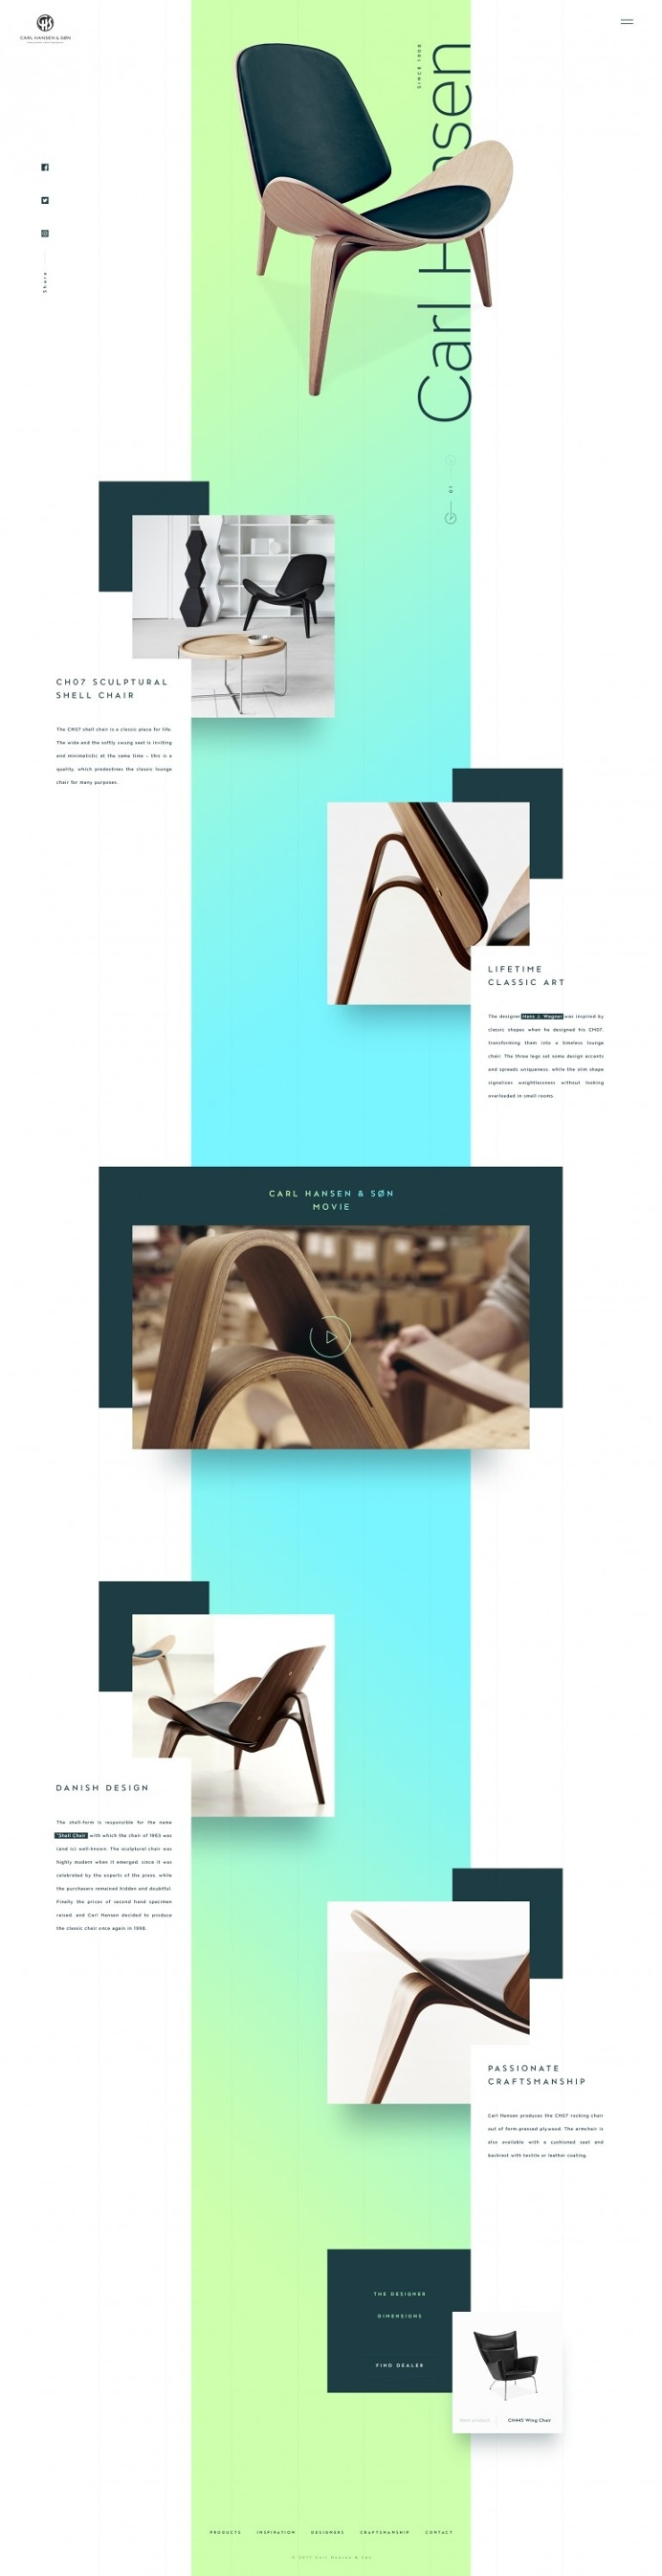 Carl Hansen & Søn – Product page exploration